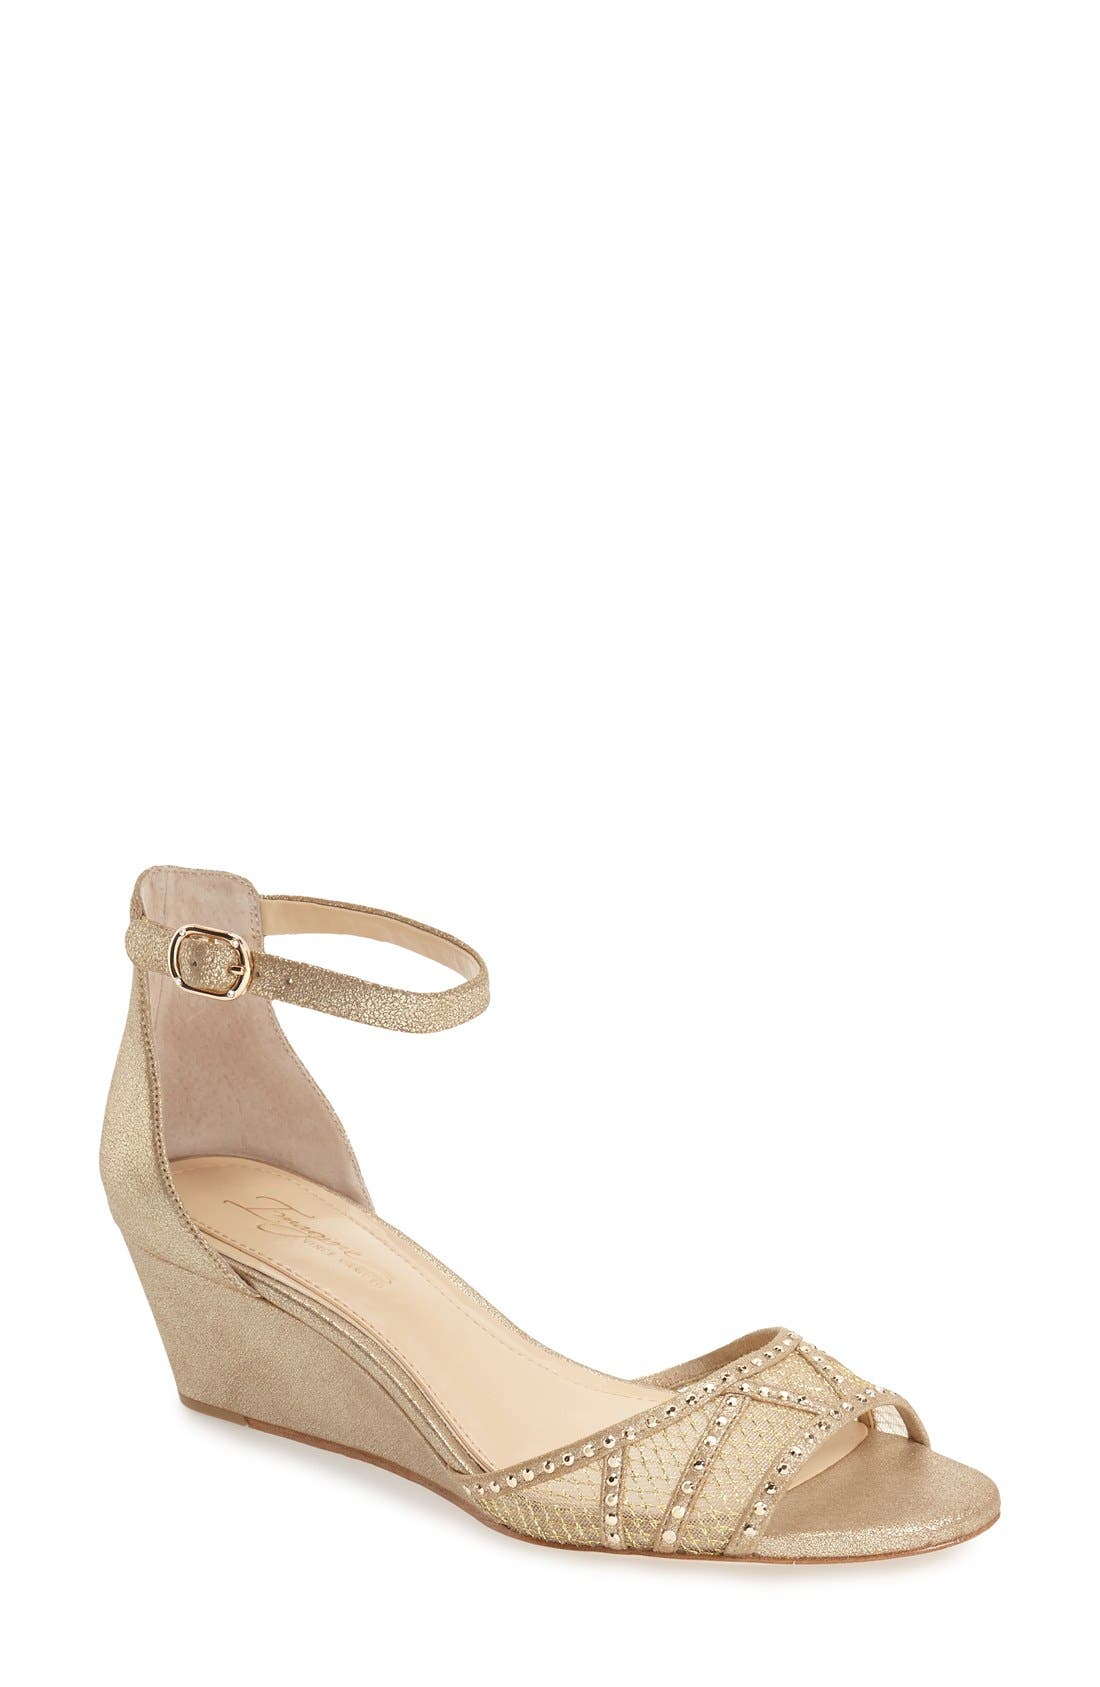 Imagine by Vince Camuto 'Joan' Studded Wedge Sandal (Women)